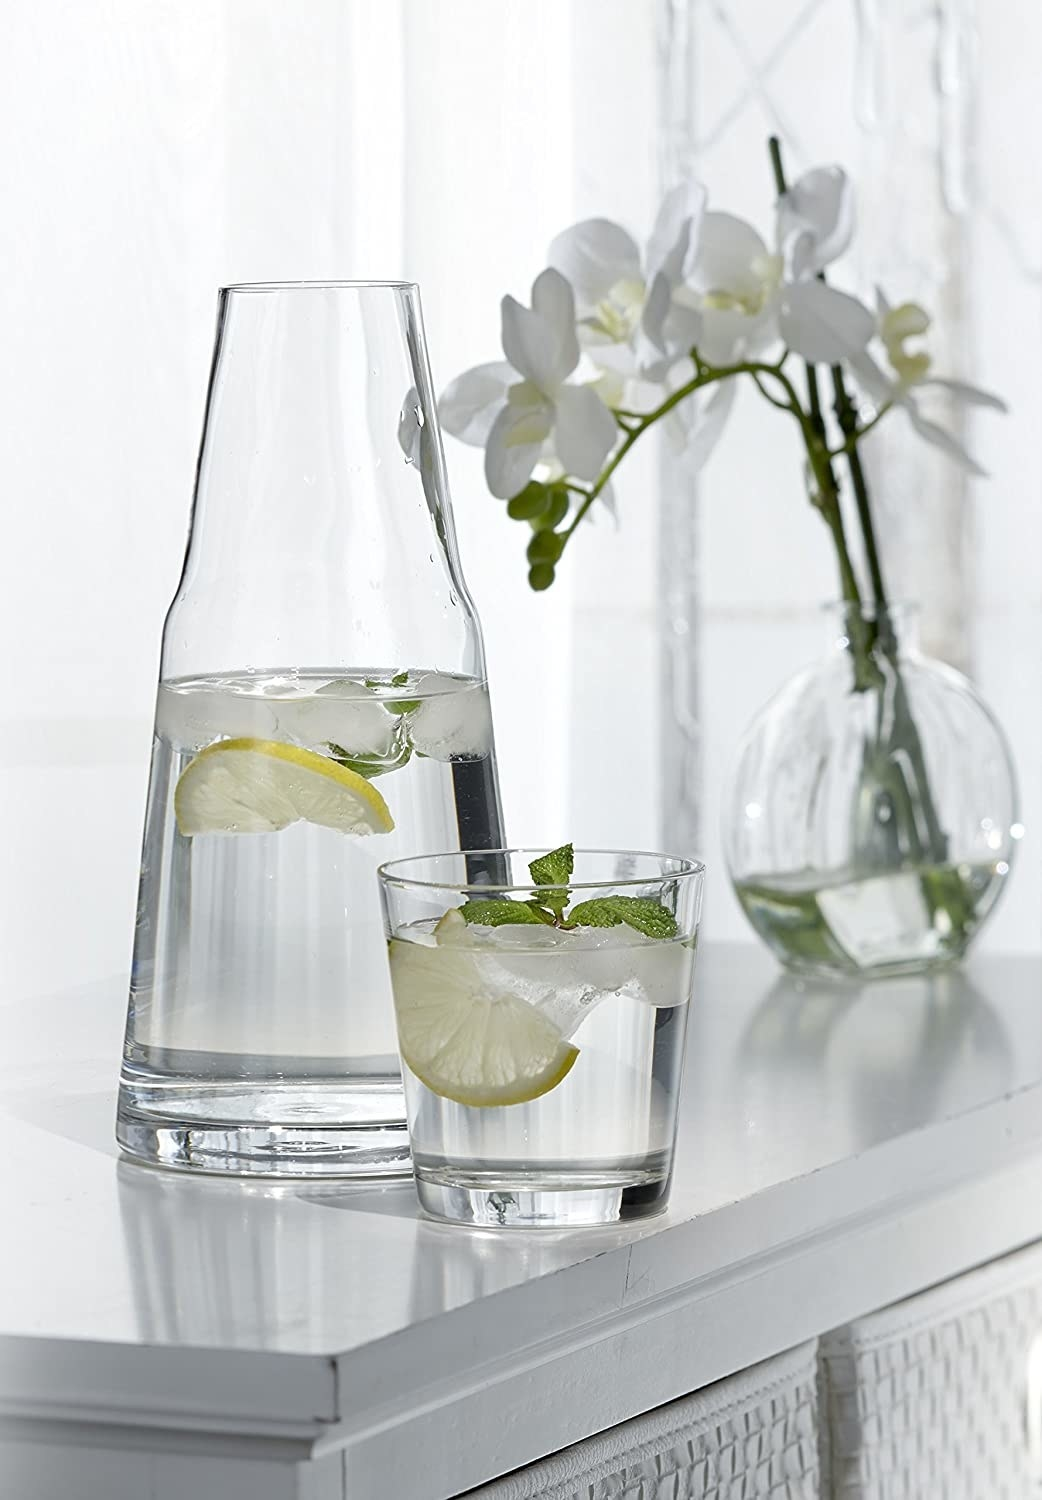 A glass water pitcher and small glass sitting next to it, both filled with water, ice, lemon slice, and mint